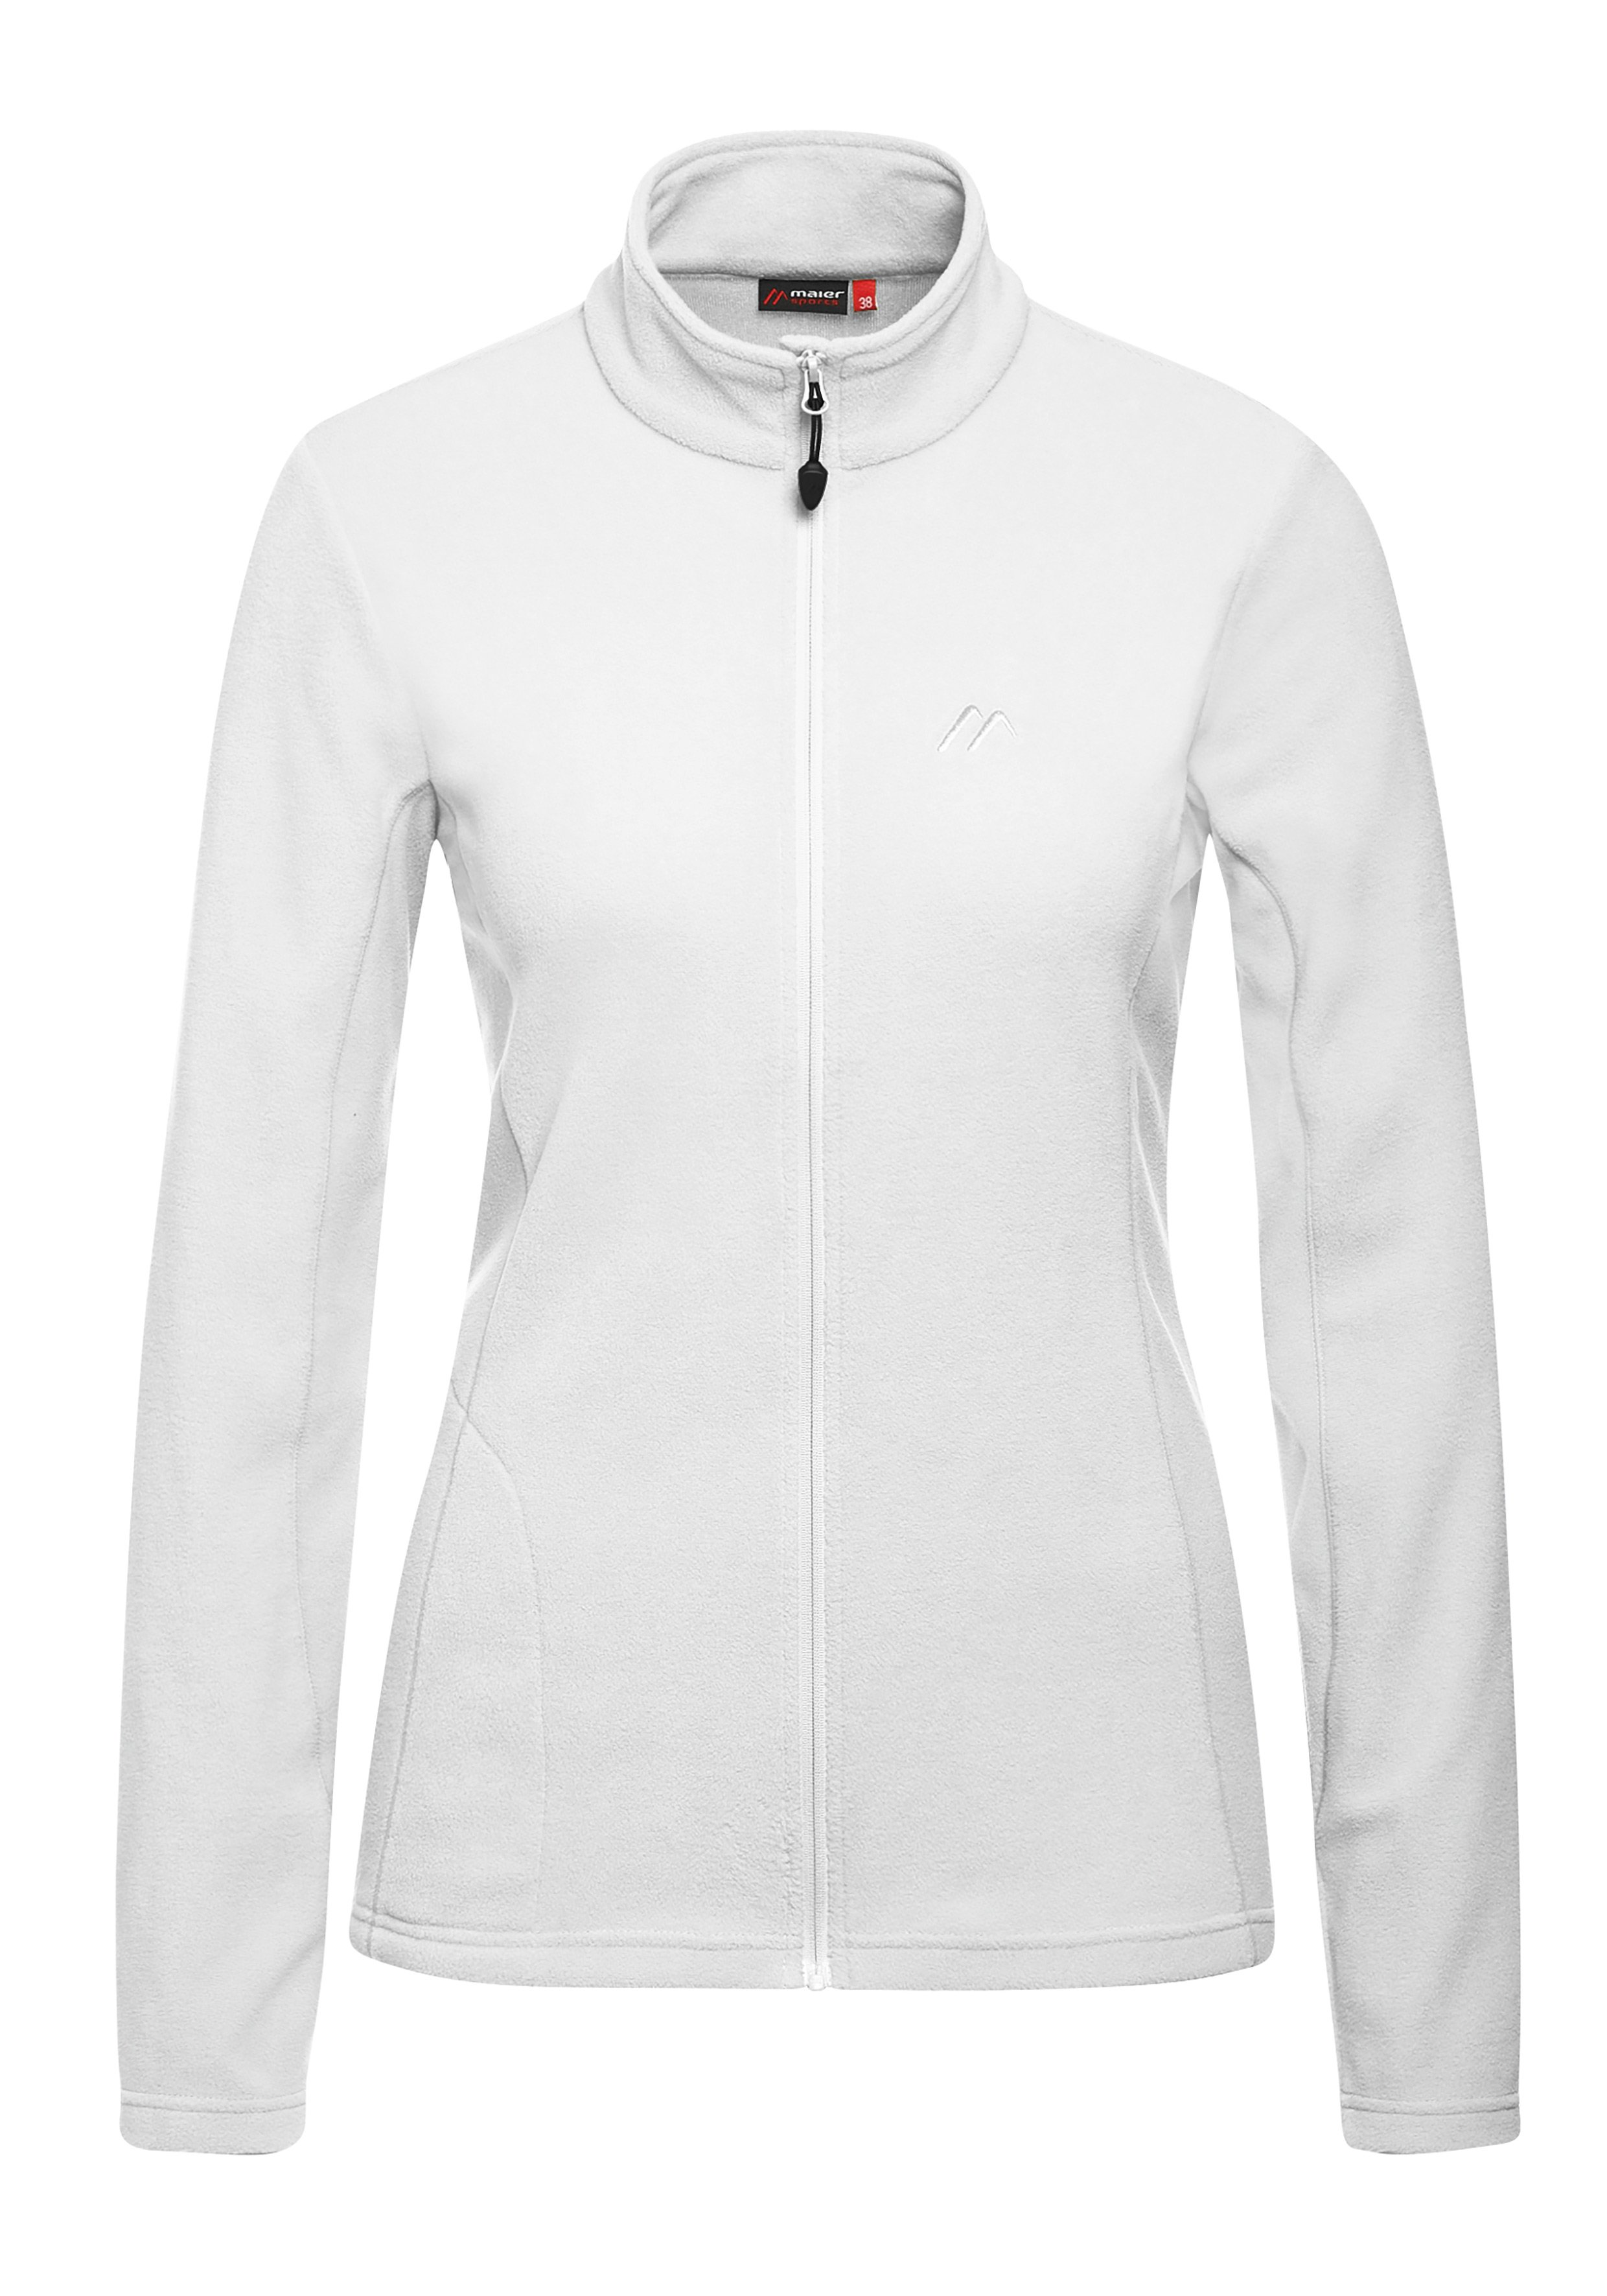 Maier Sports Fleecejacke Kaija | Sportbekleidung > Sportjacken > Fleecejacken | maier sports